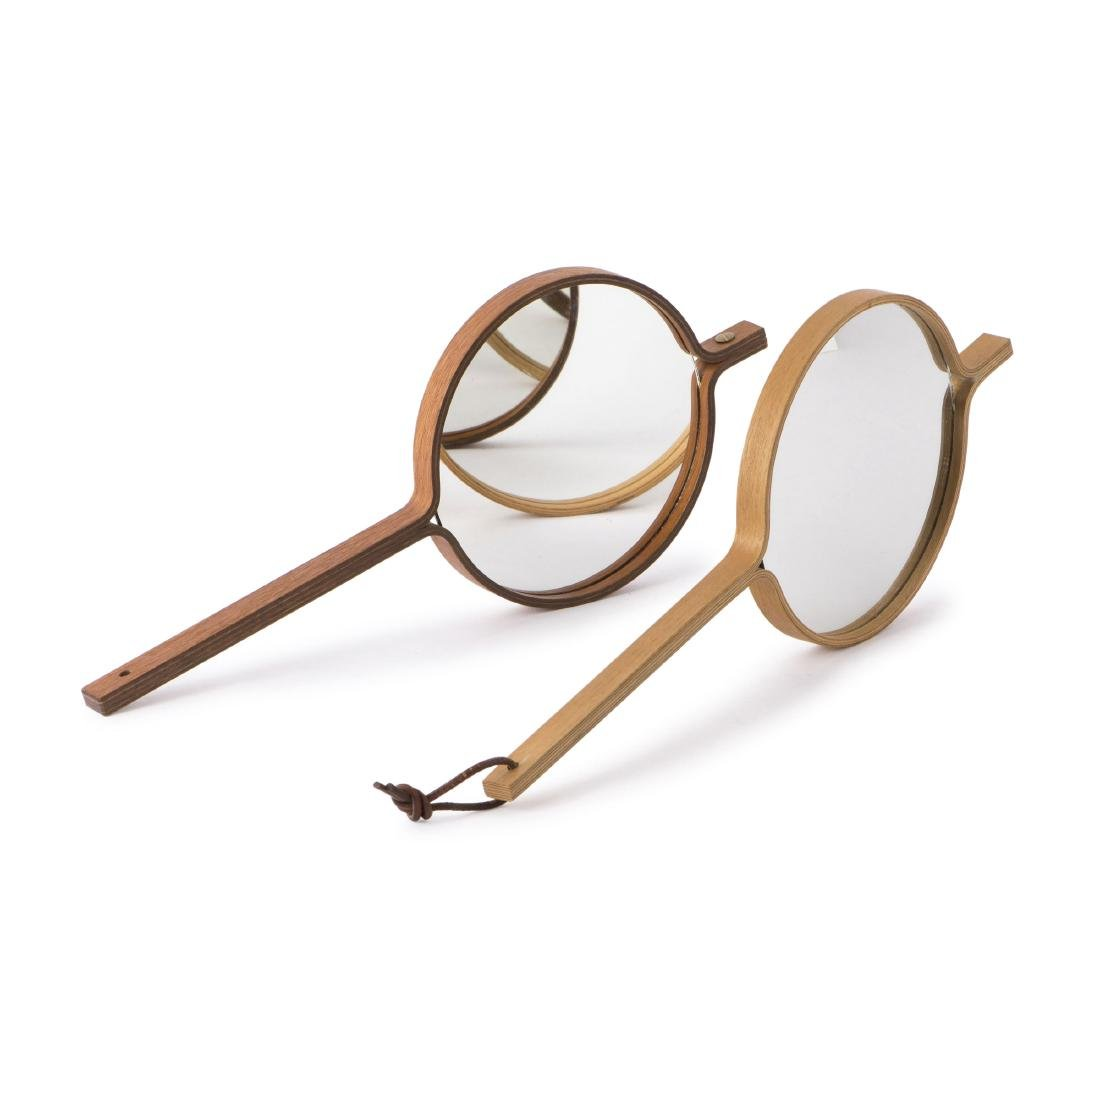 Two hand mirrors, c1958